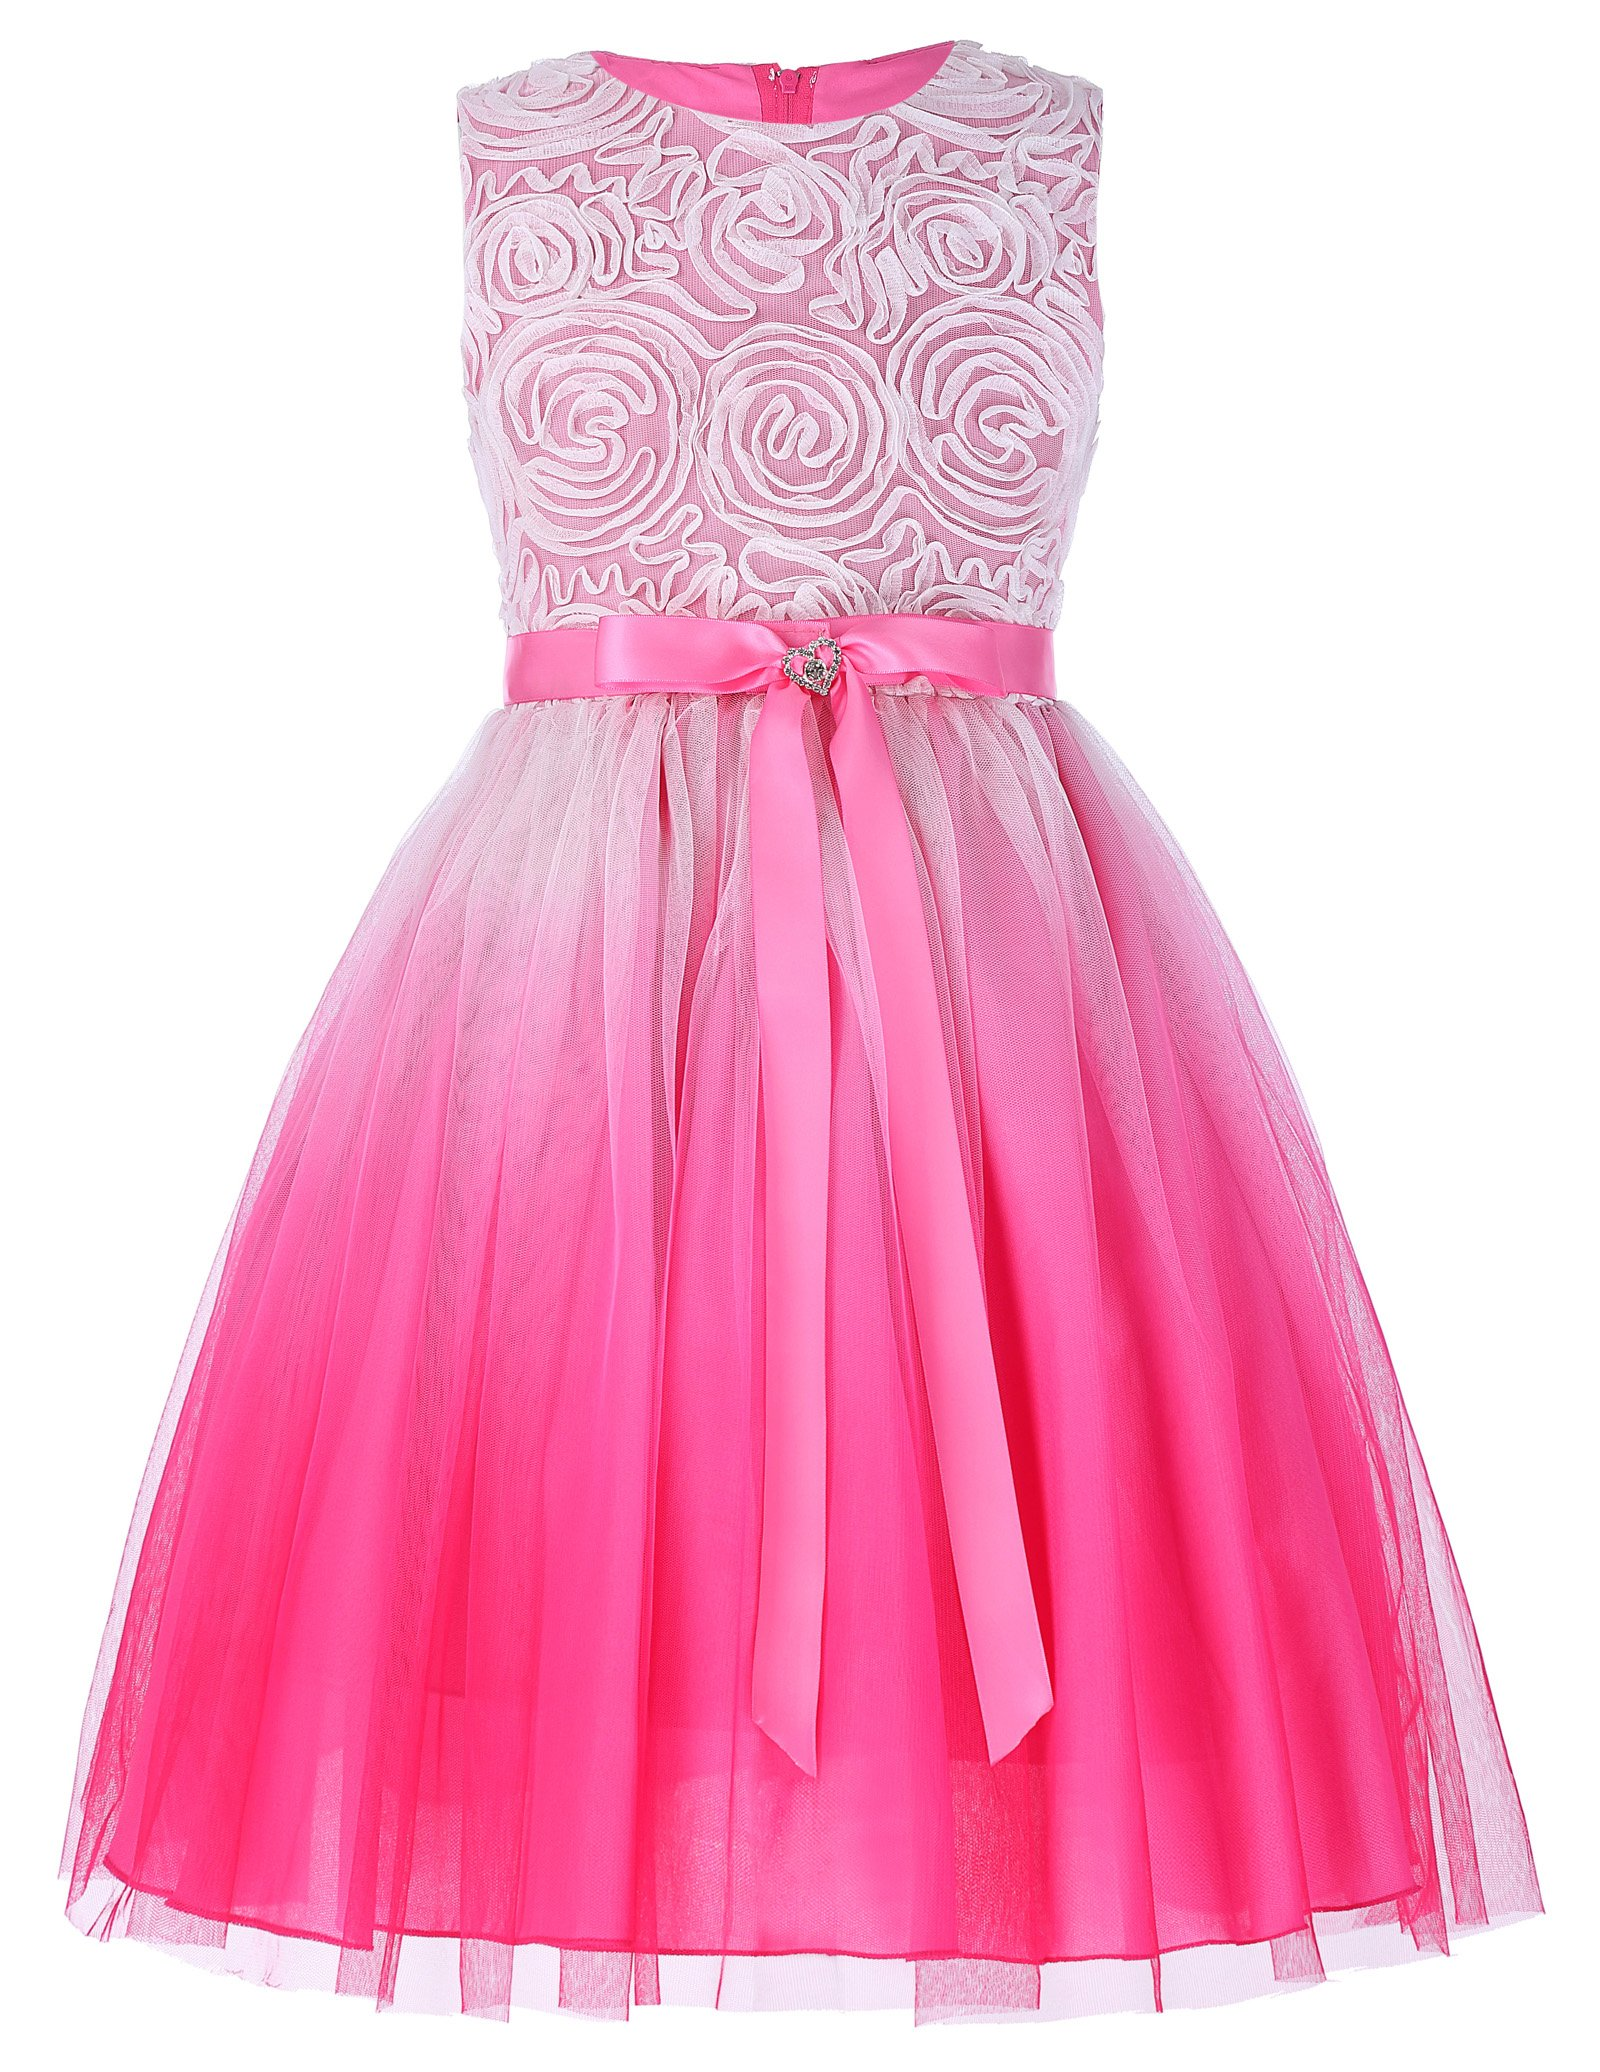 16e5c0a0a10 Galleon - GRACE KARIN Lovely Tulle Pleated Lace Flower Girl Party Birthday  Dresses 6-7yrs CL438-1